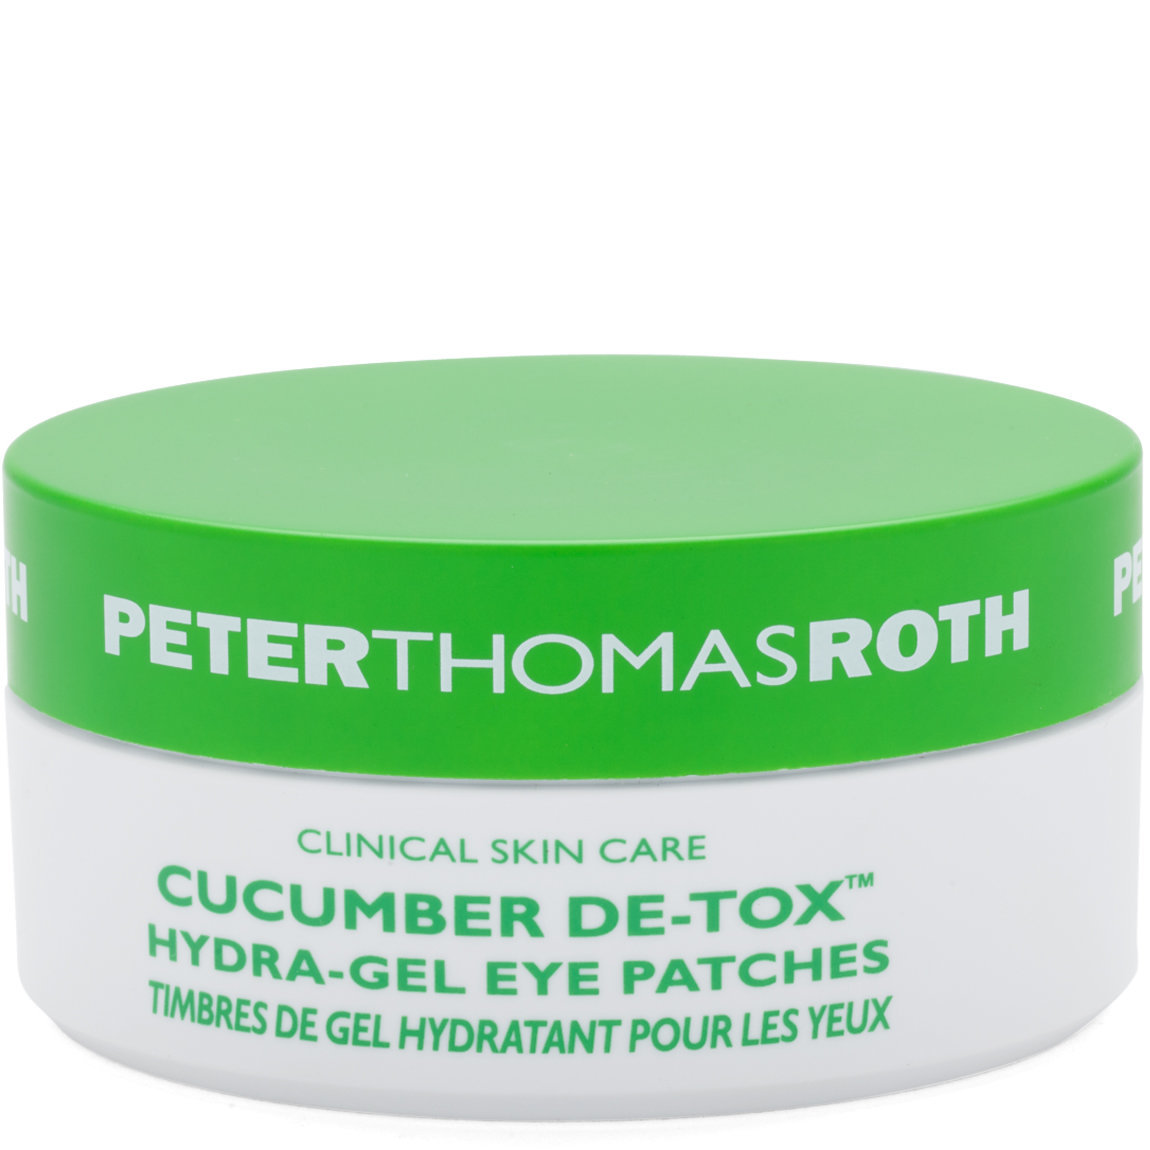 Peter Thomas Roth Cucumber Hydra-Gel Eye Patches product swatch.